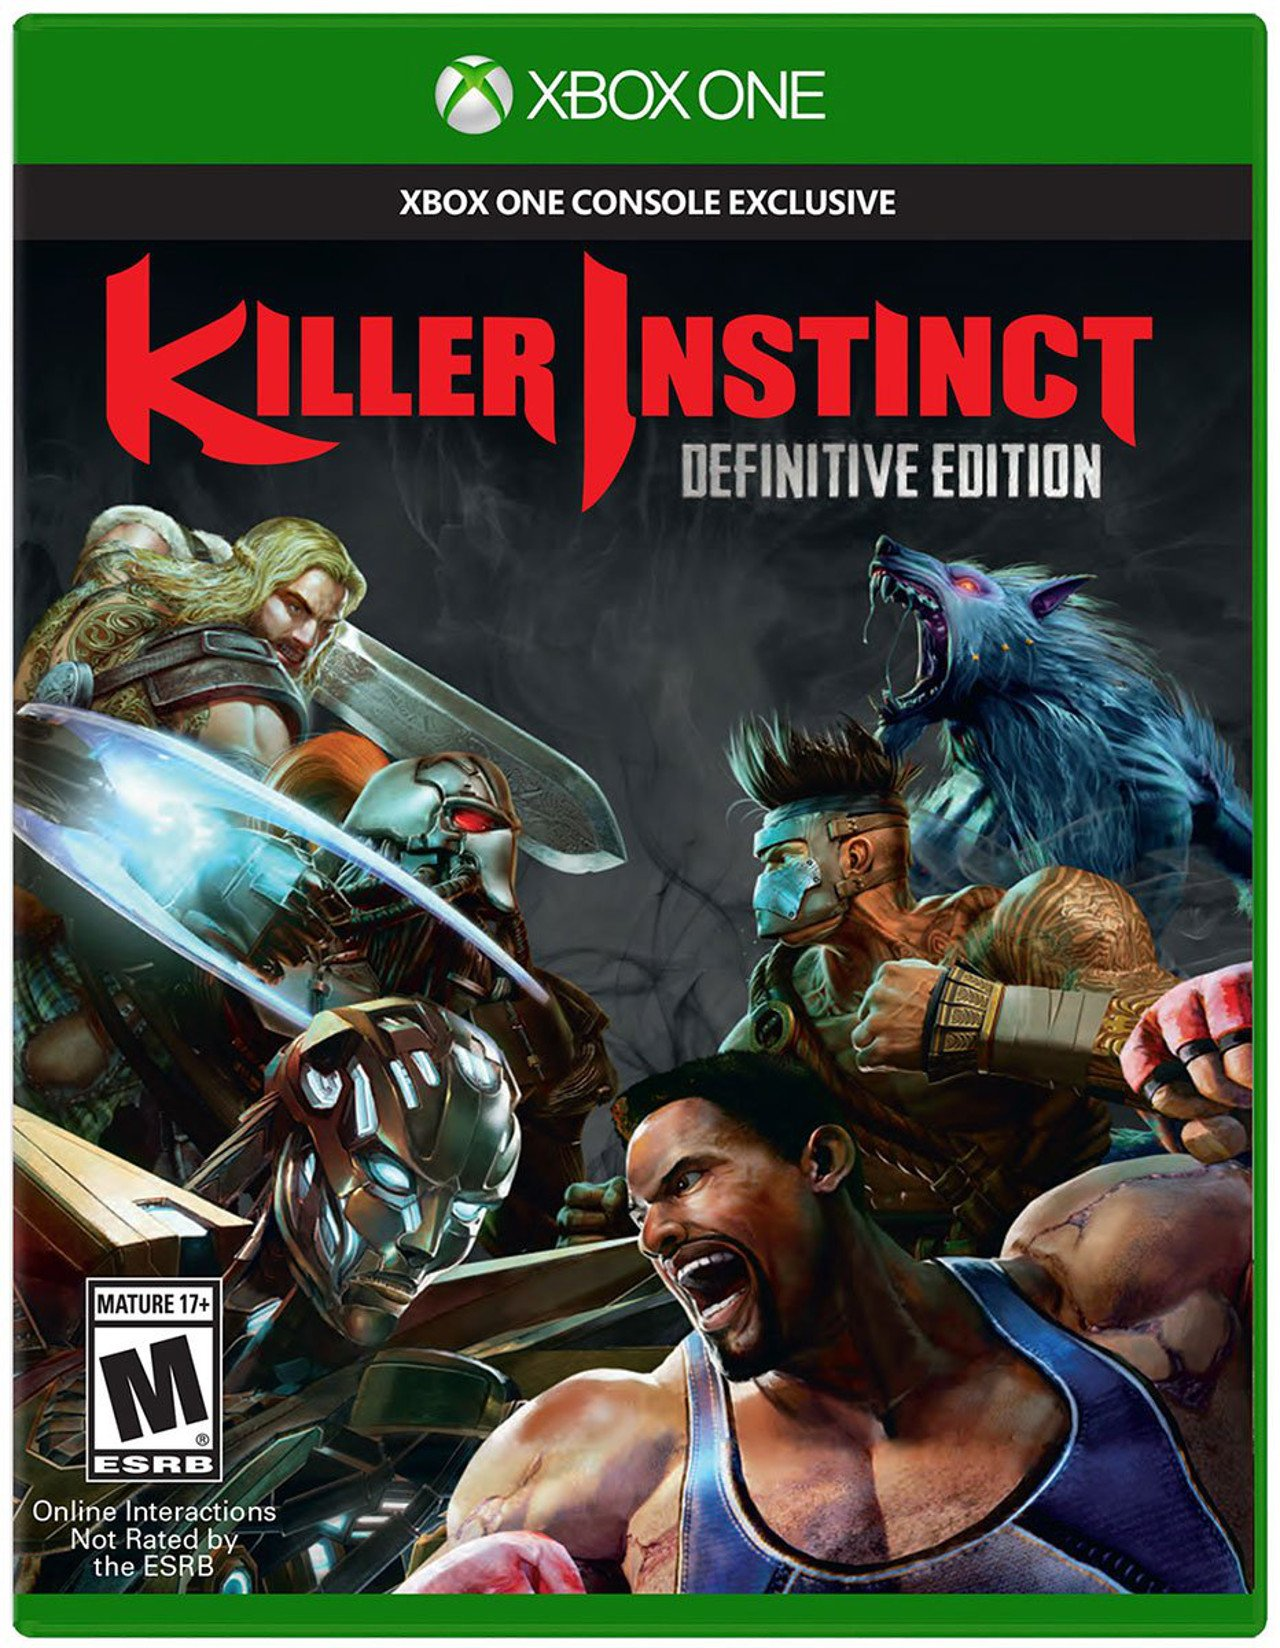 Killer Instinct Definitive Edition: trapelati data e prezzo